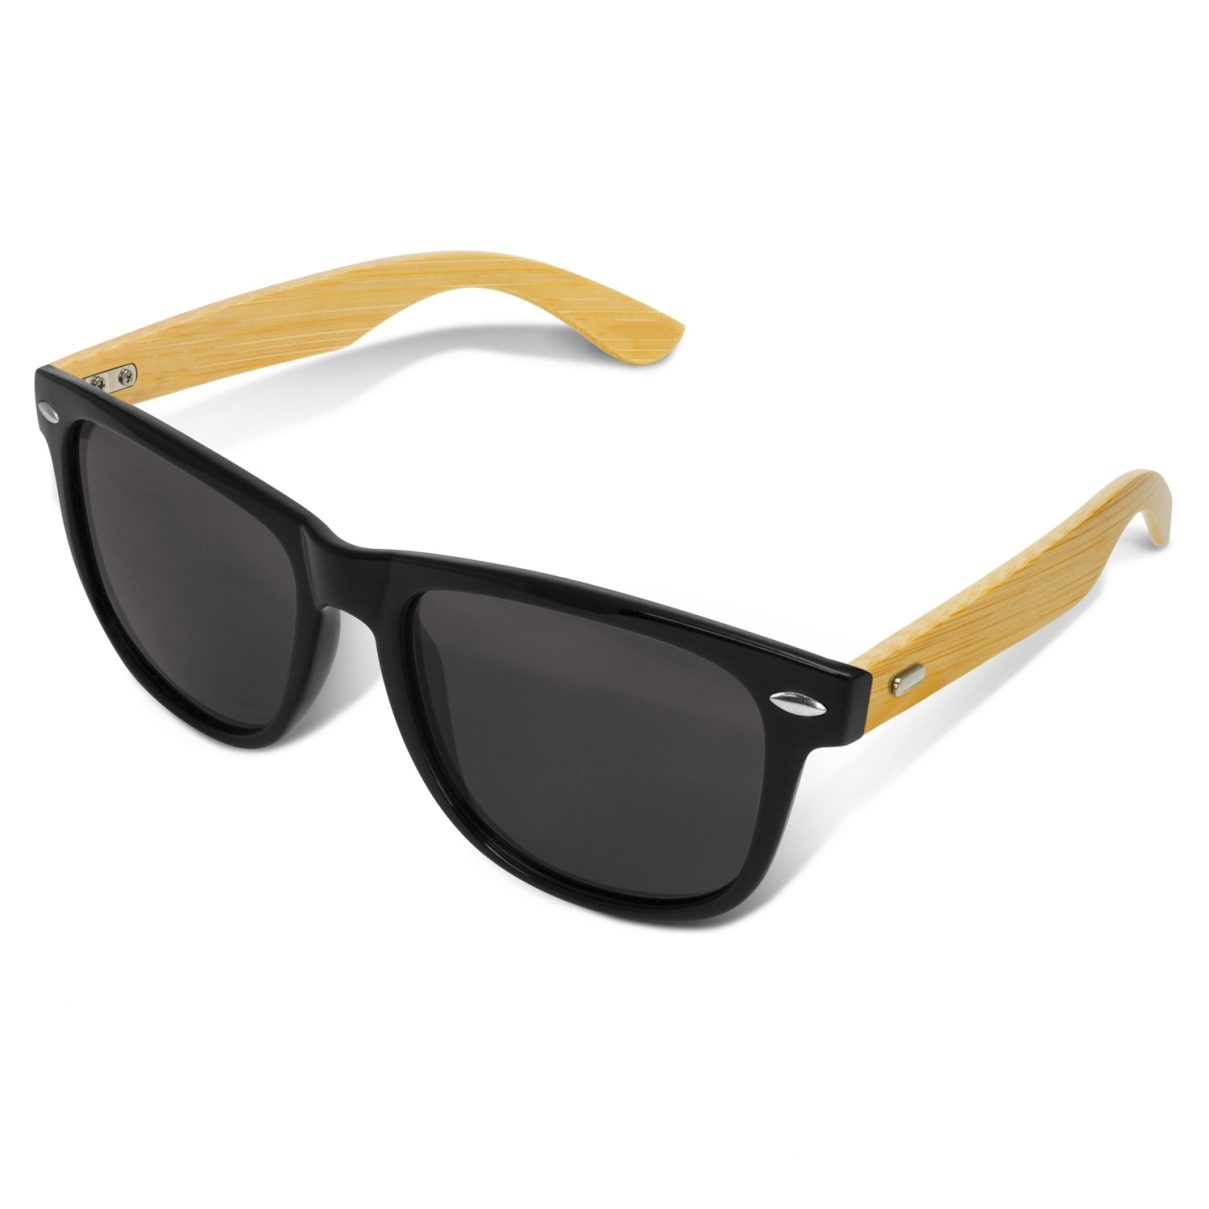 Malibu Premium Sunglasses - Bamboo Bulk Supplier